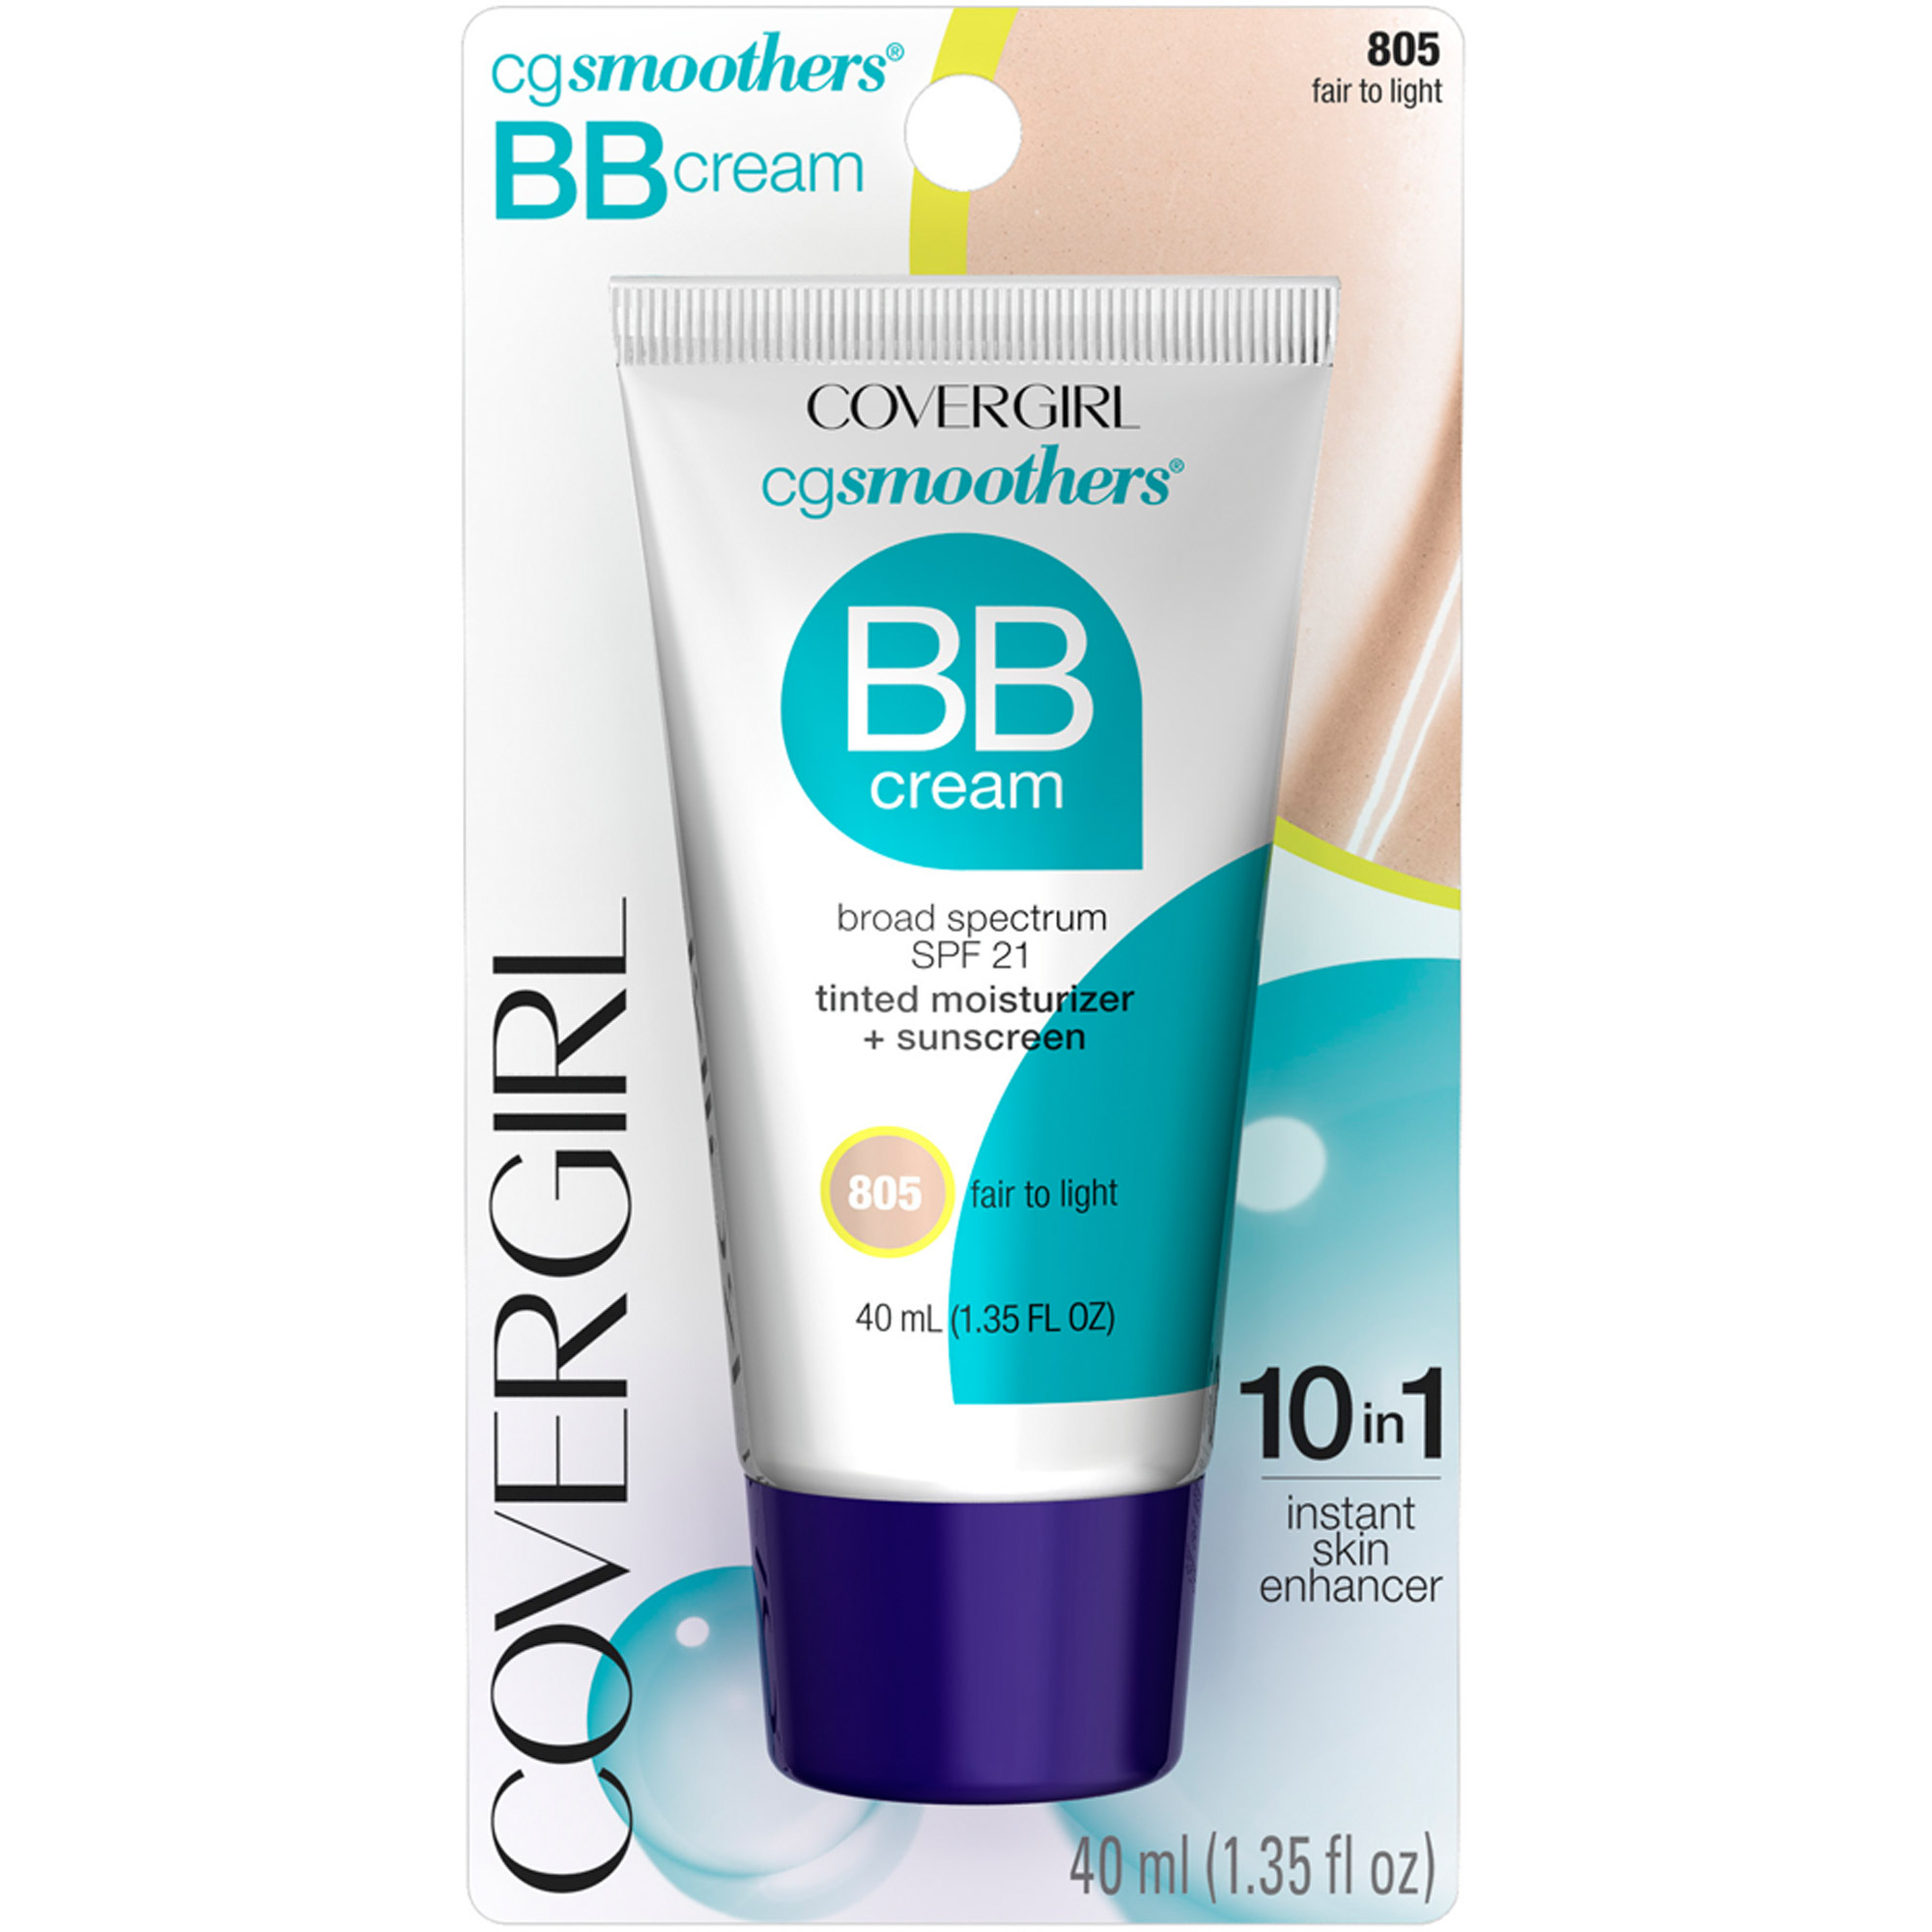 COVERGIRL Smoothers Spf 15 Tinted Moisturizer BB Cream Fair To Light 805, 1.35 oz